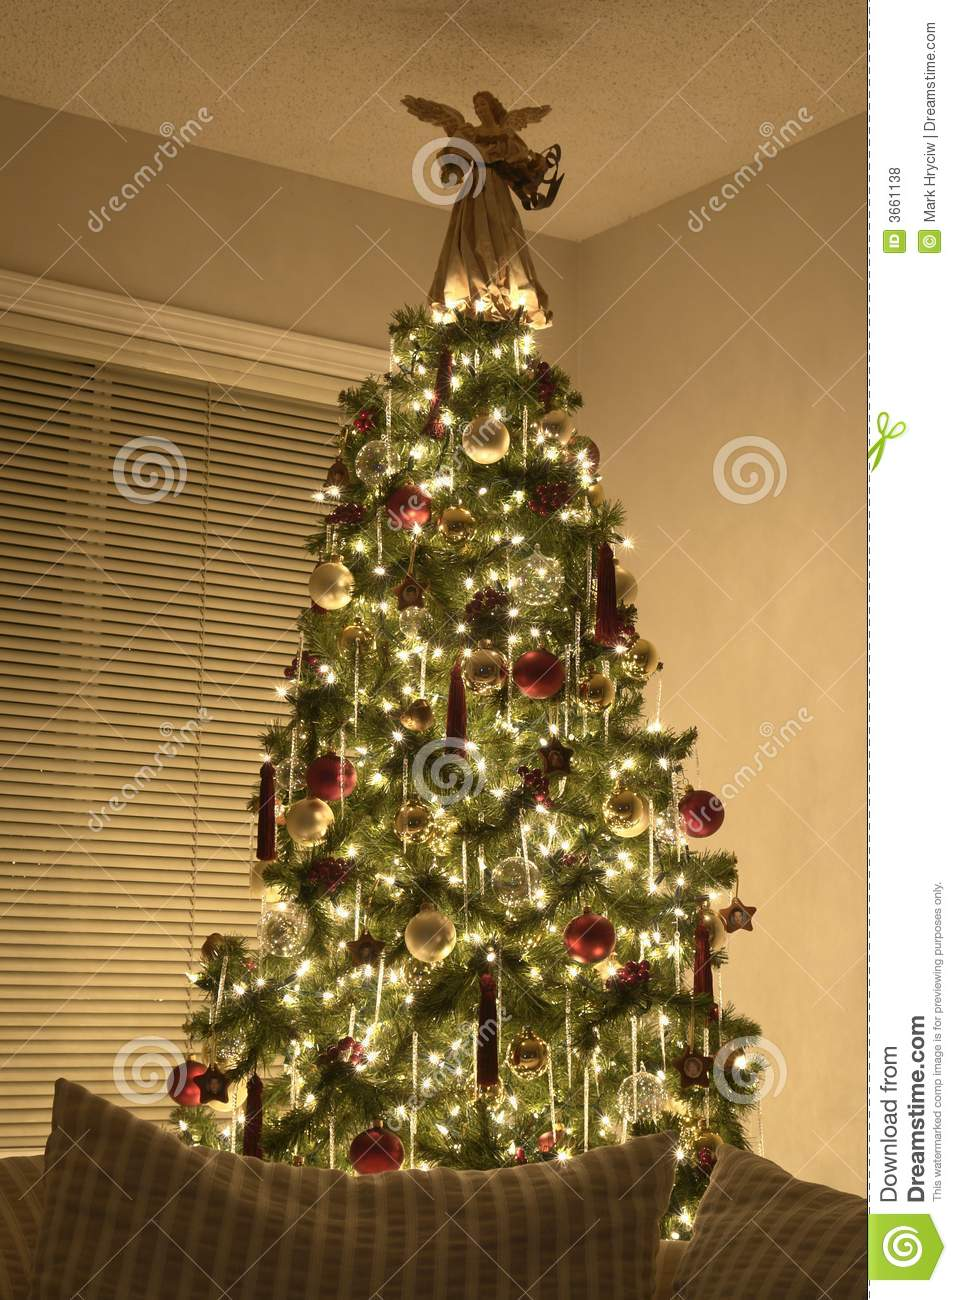 Victorian Christmas Tree.Victorian Christmas Tree Stock Photo Image Of December